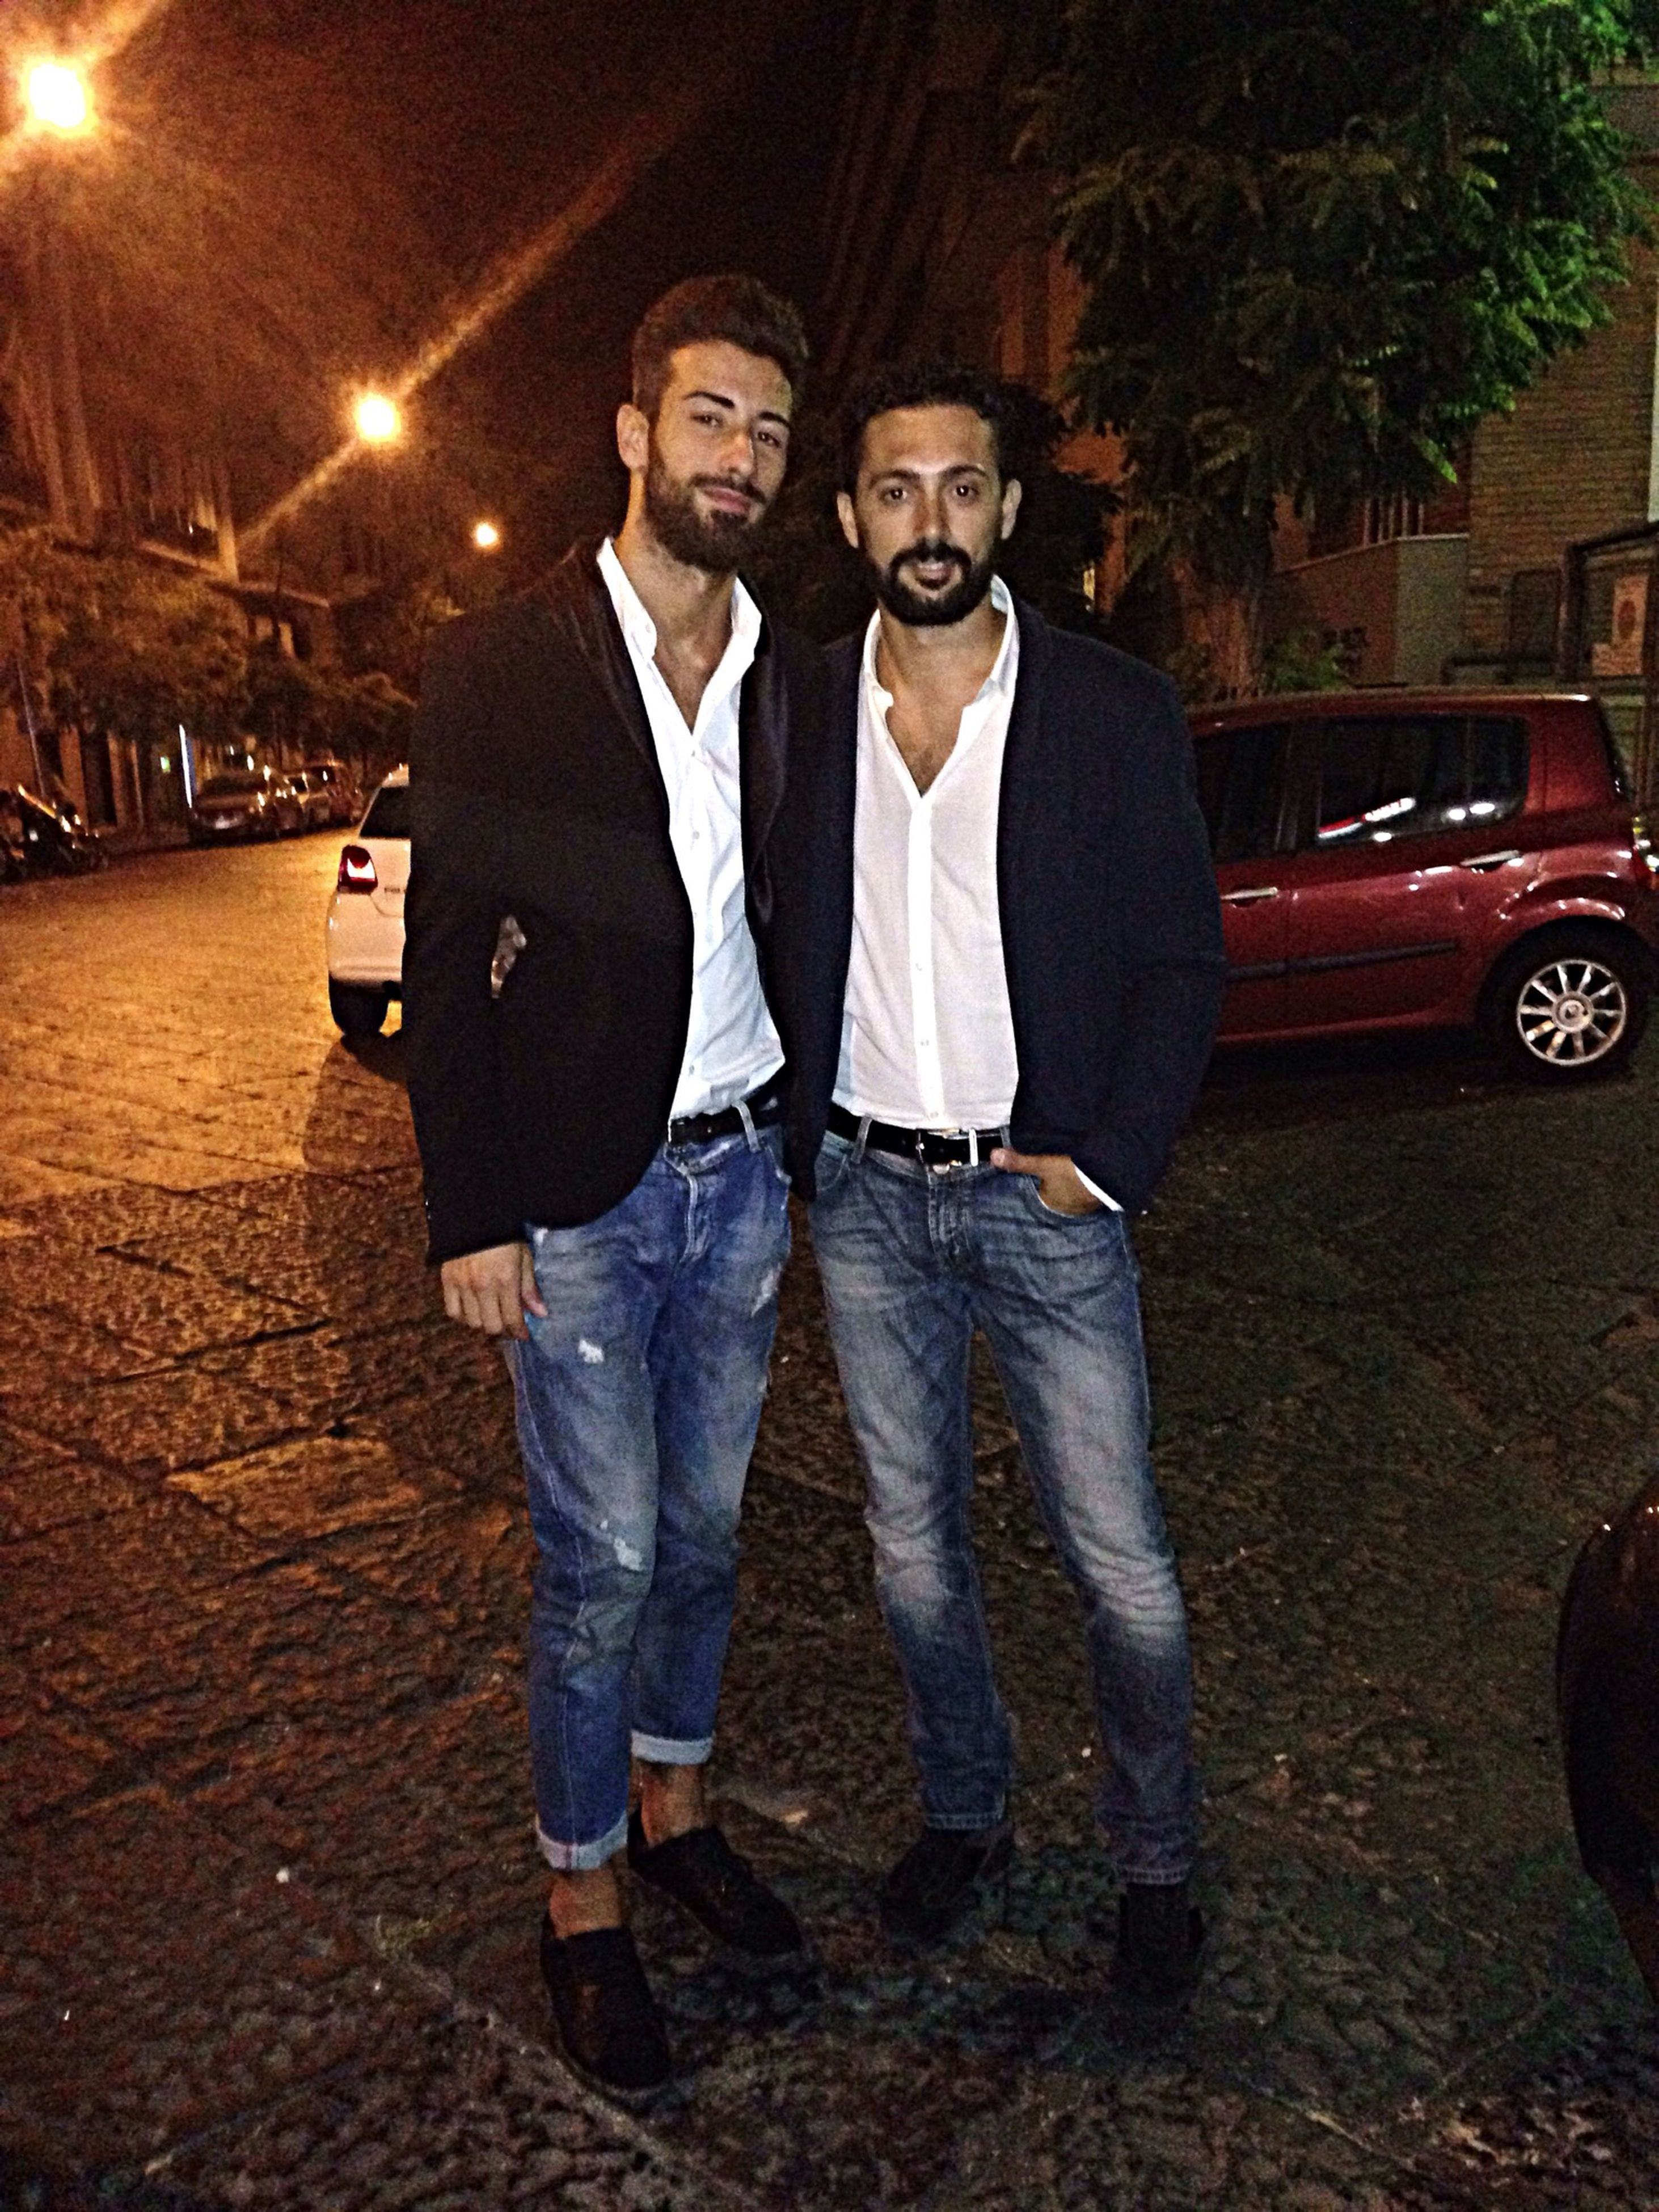 lifestyles, casual clothing, full length, leisure activity, front view, person, togetherness, standing, looking at camera, portrait, night, street, bonding, young men, car, transportation, young adult